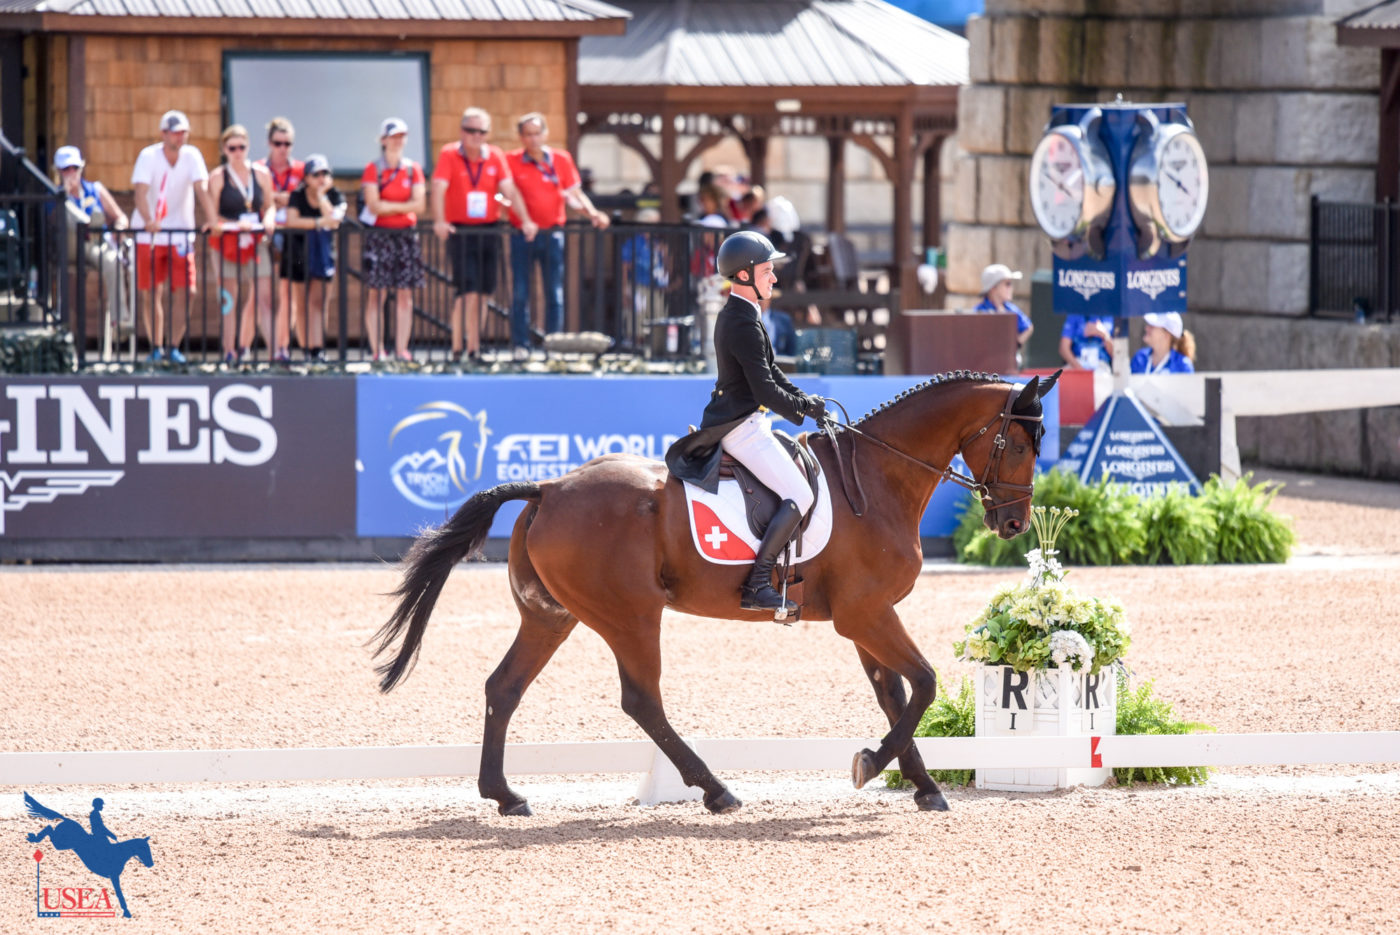 24th - Robin Godel and Grandeur de Lully CH (SUI) - 34.2